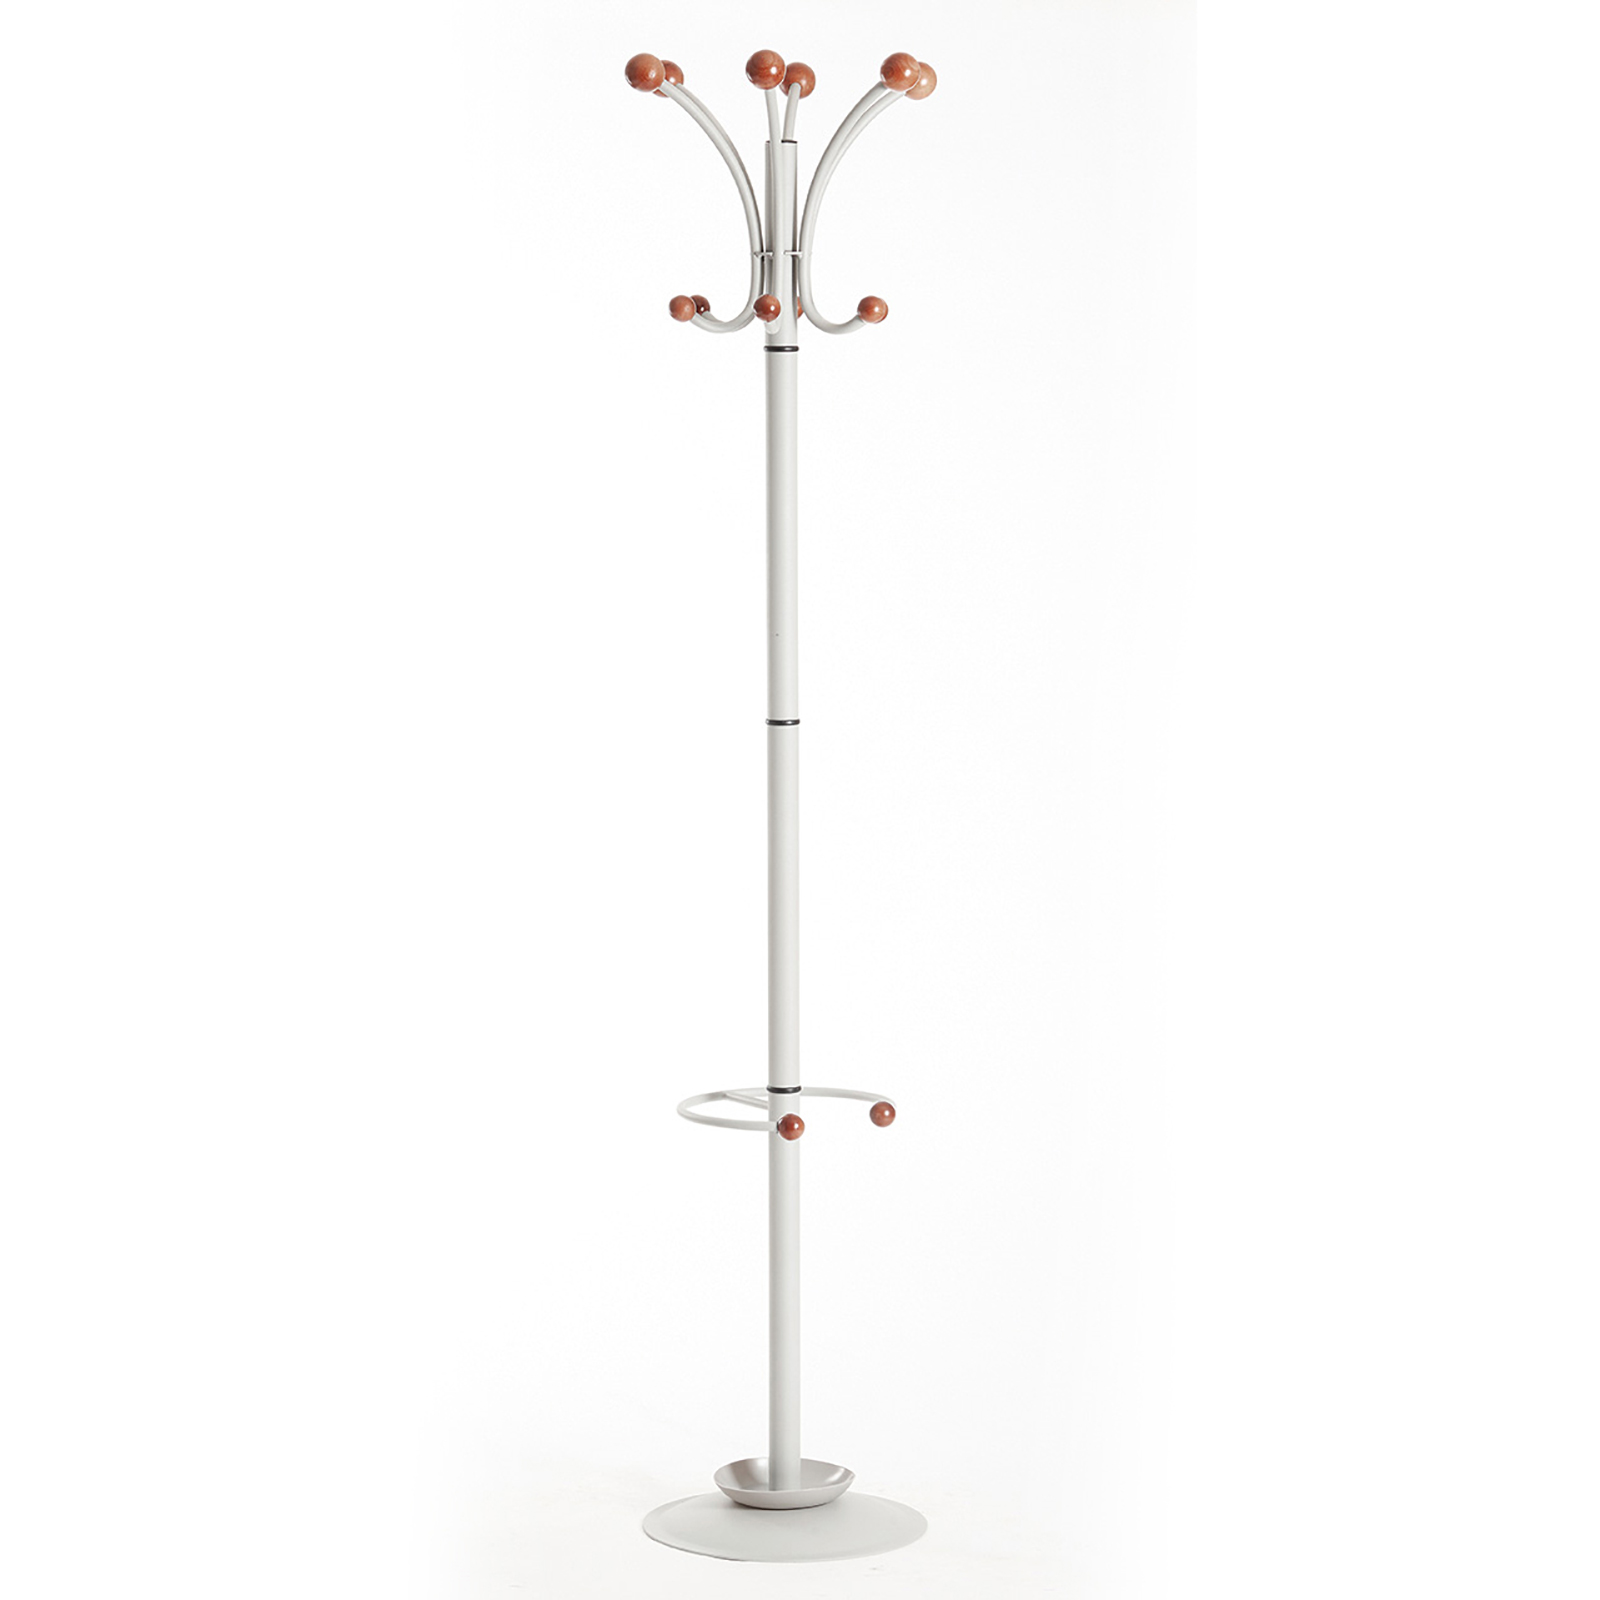 Coat & umbrella stand with 12 coat hooks and 4 umbrella hooks 1840mm high - silver